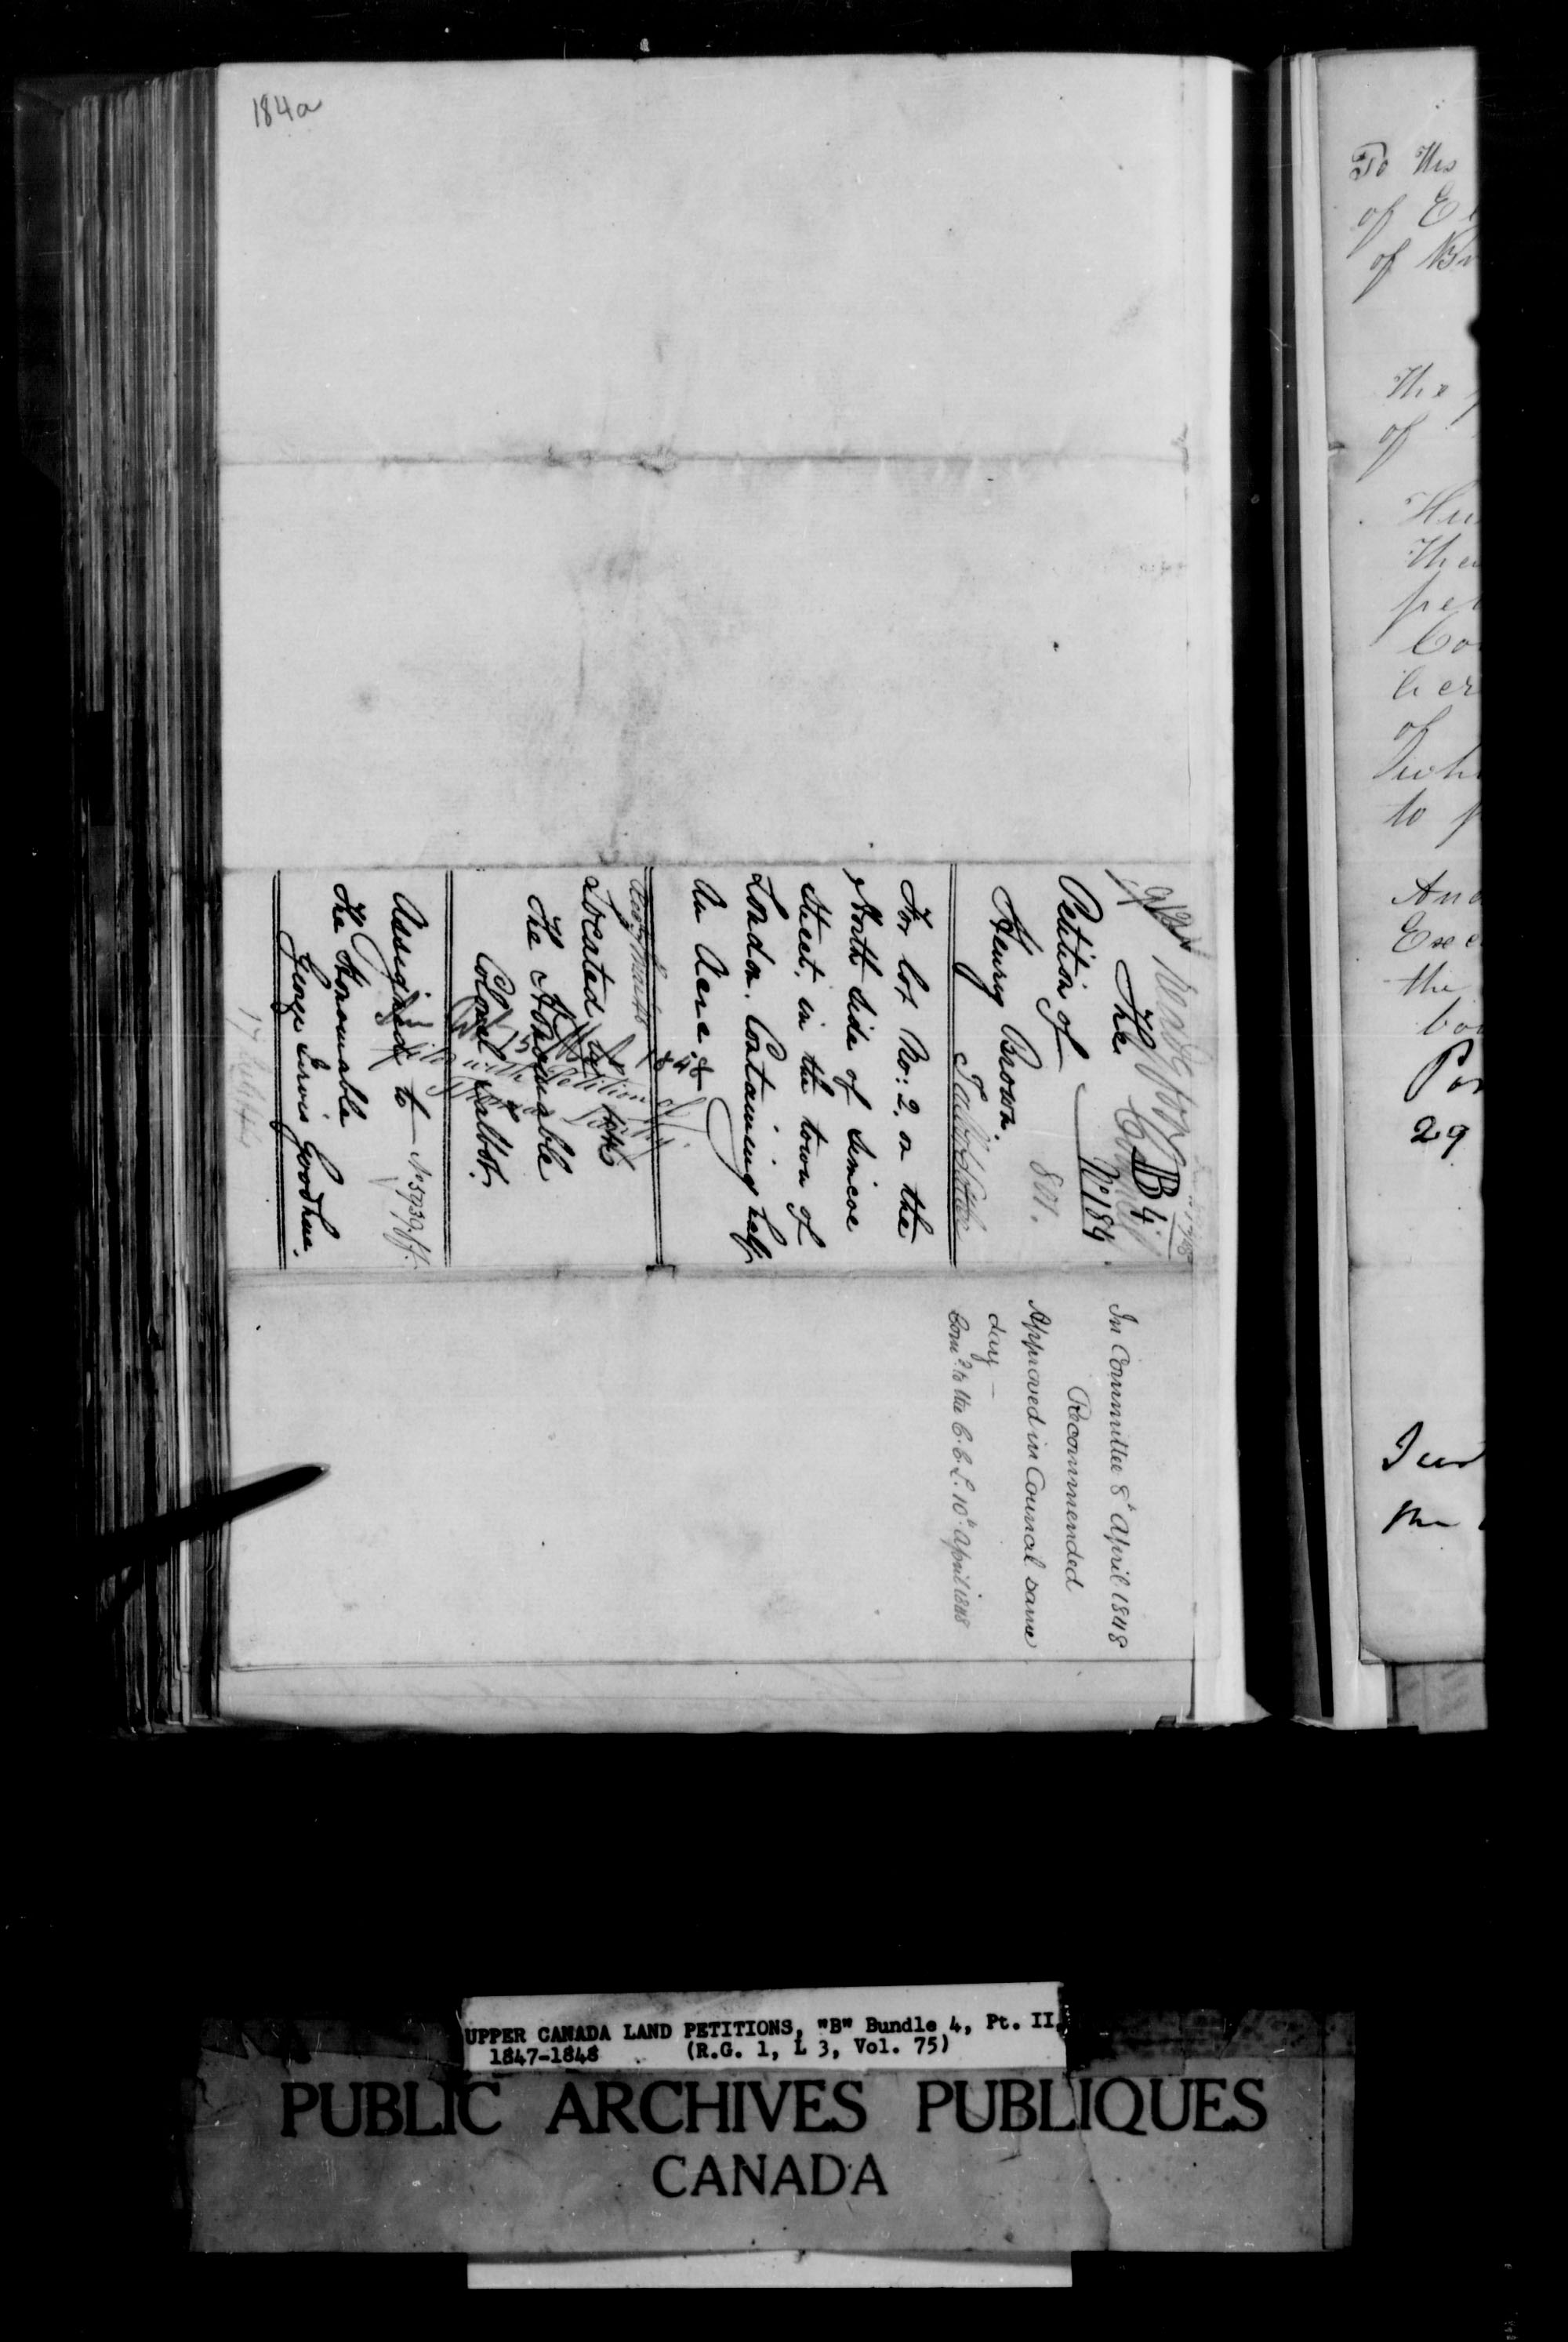 Title: Upper Canada Land Petitions (1763-1865) - Mikan Number: 205131 - Microform: c-1639